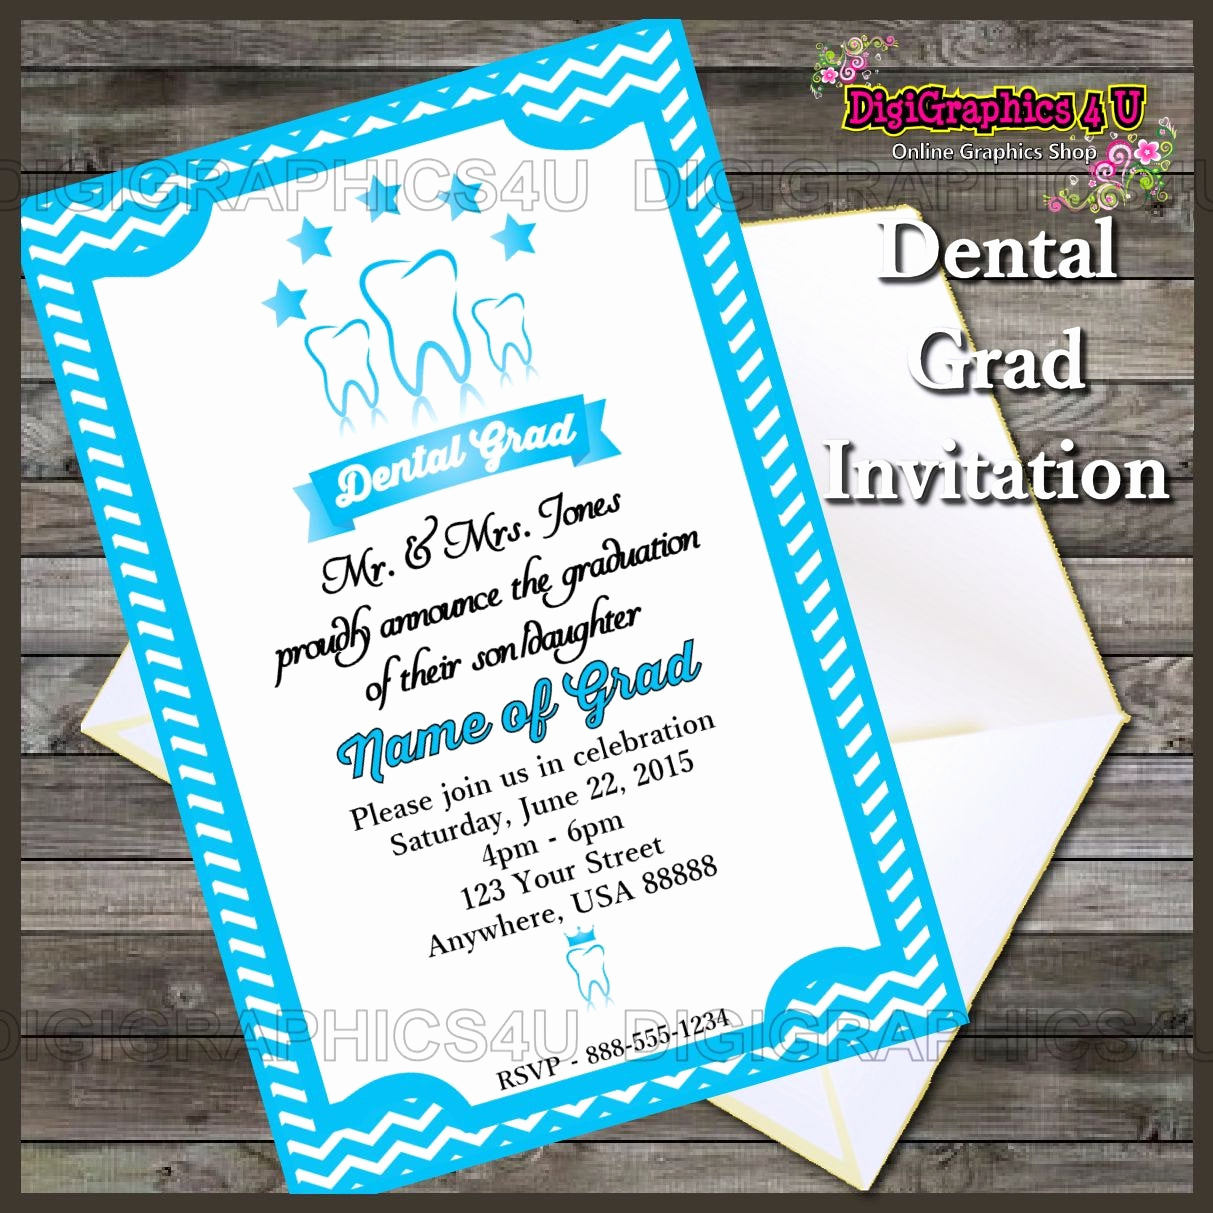 Printable Graduation Party Invitation Inspirational Printable Dental Graduation Party Invitation by Digigraphics4u